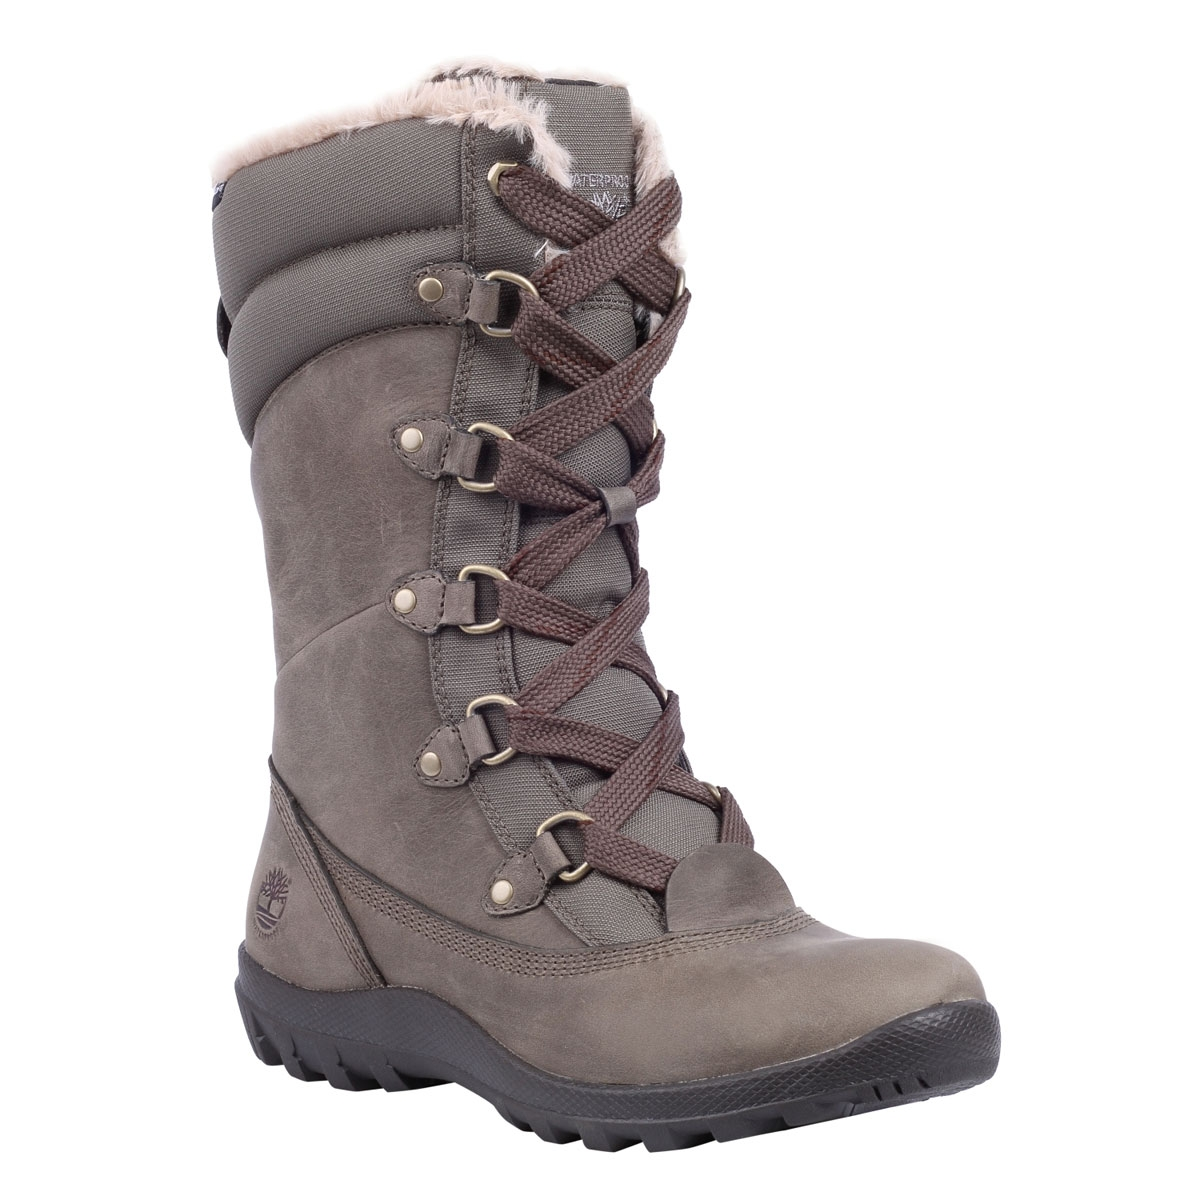 Image of Timberland Earthkeepers Mount Hope Mid Waterproof Boots (Women s)  - Warm Grey fdd96a1f5192